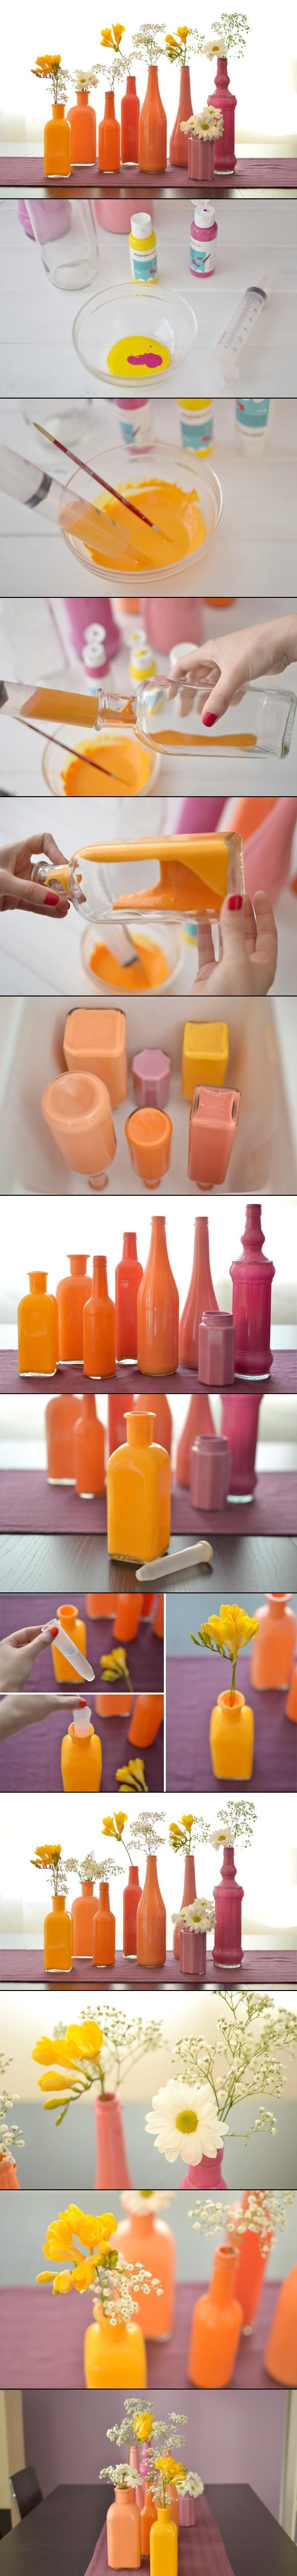 Painted bottles #DIY #Paint #Bottles #Ombre #Orange #Thrift #FleaMarket #Style